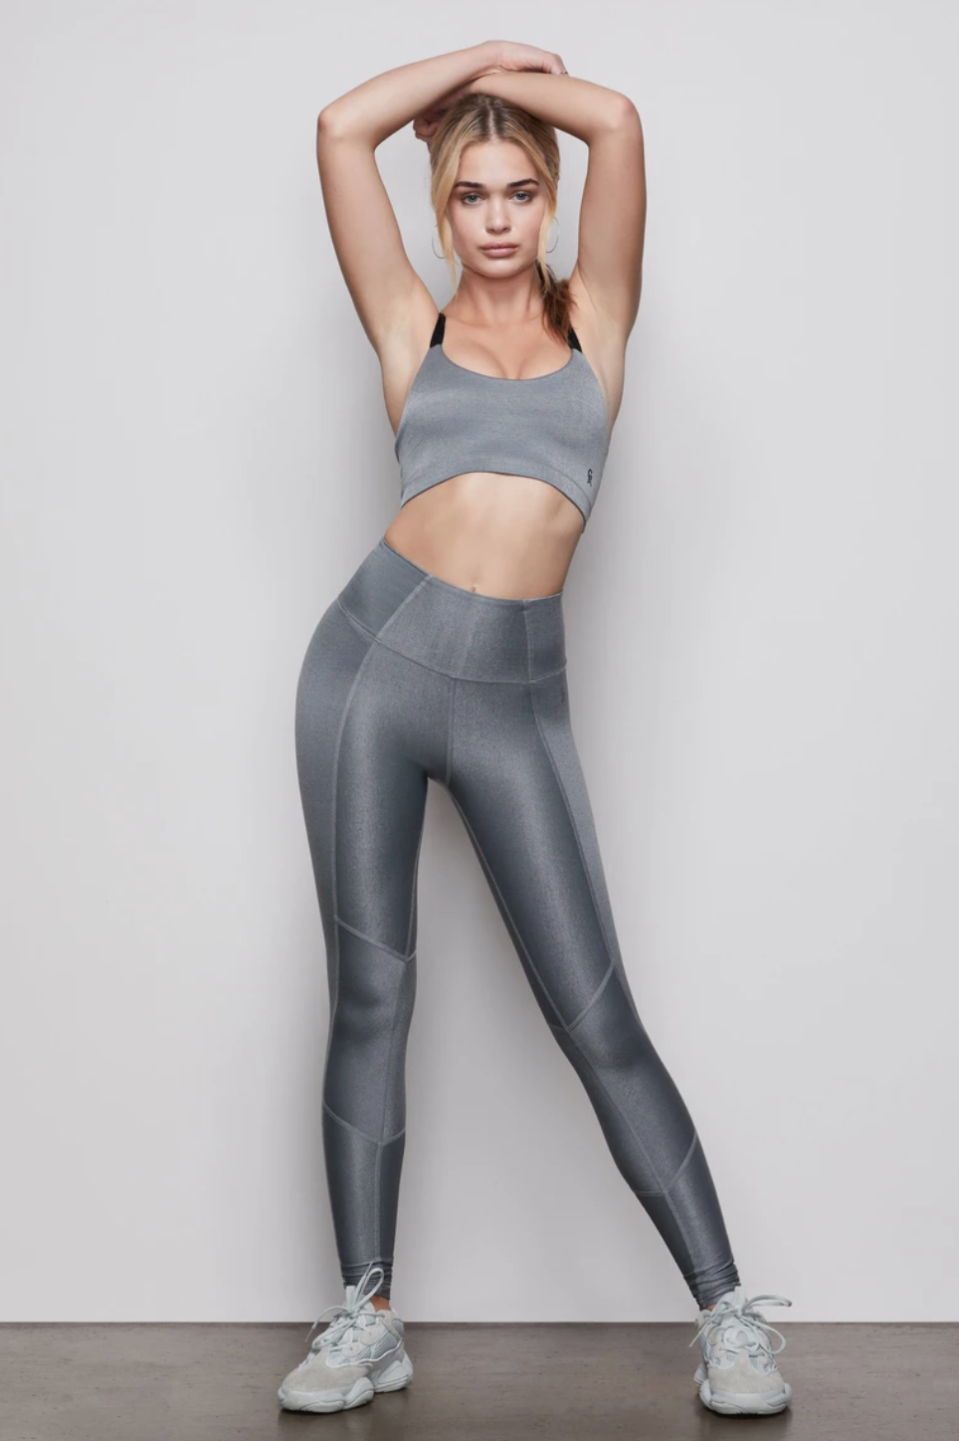 Kendall Jenner and Lauren Perez were spotted wearing the Shiny Rib Leggings, on sale for $82. Image via Good American.